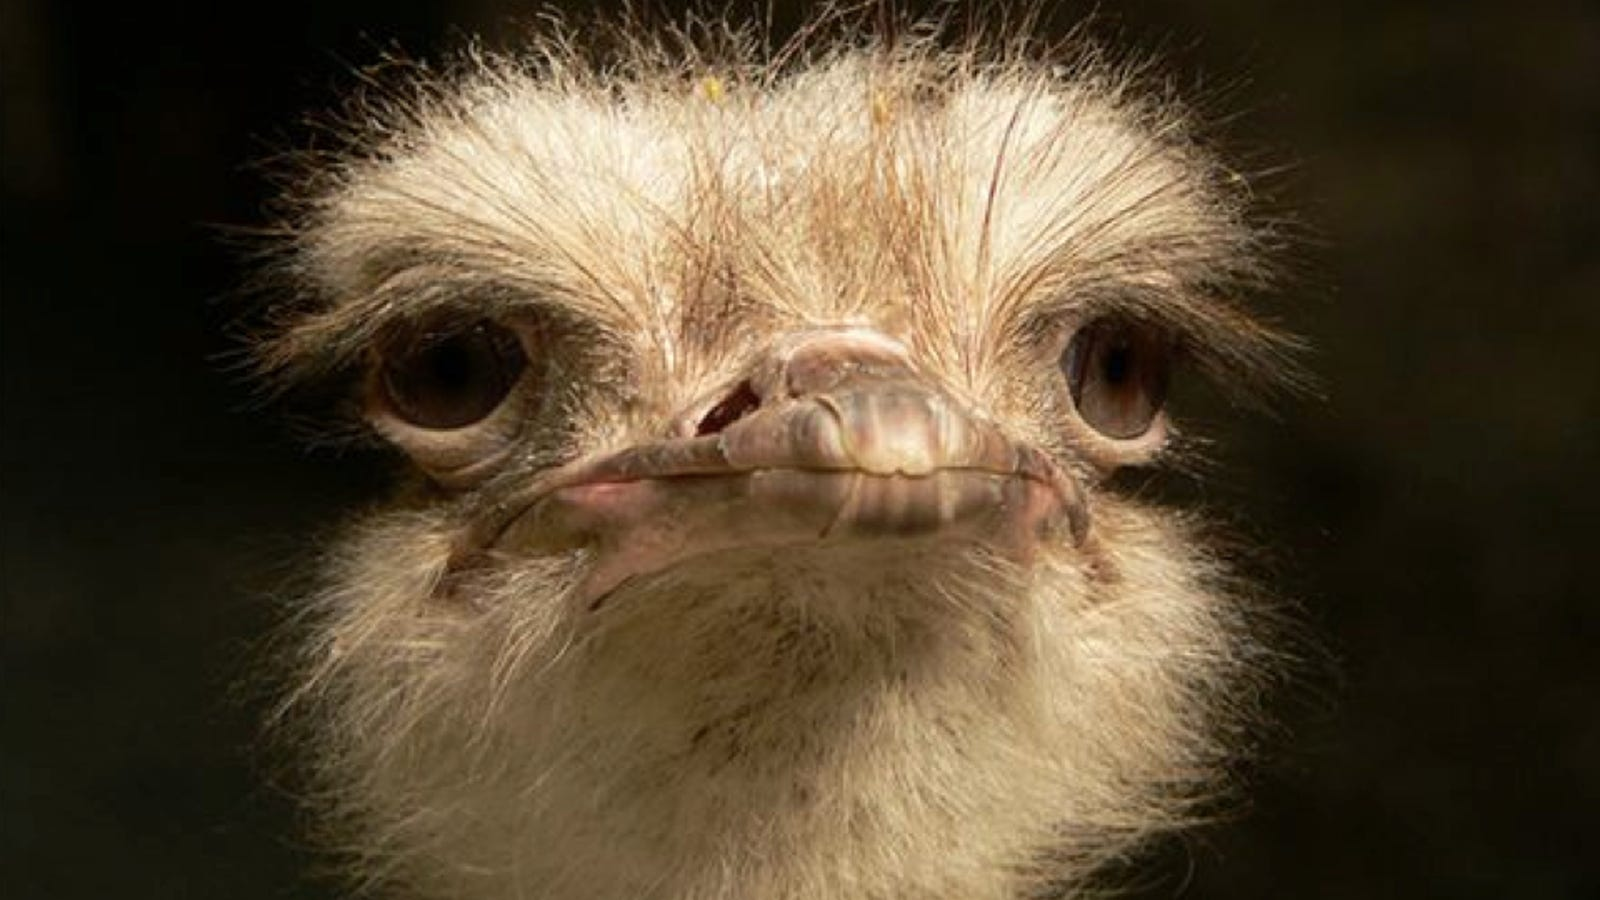 That ostrich over there? It is totally into you